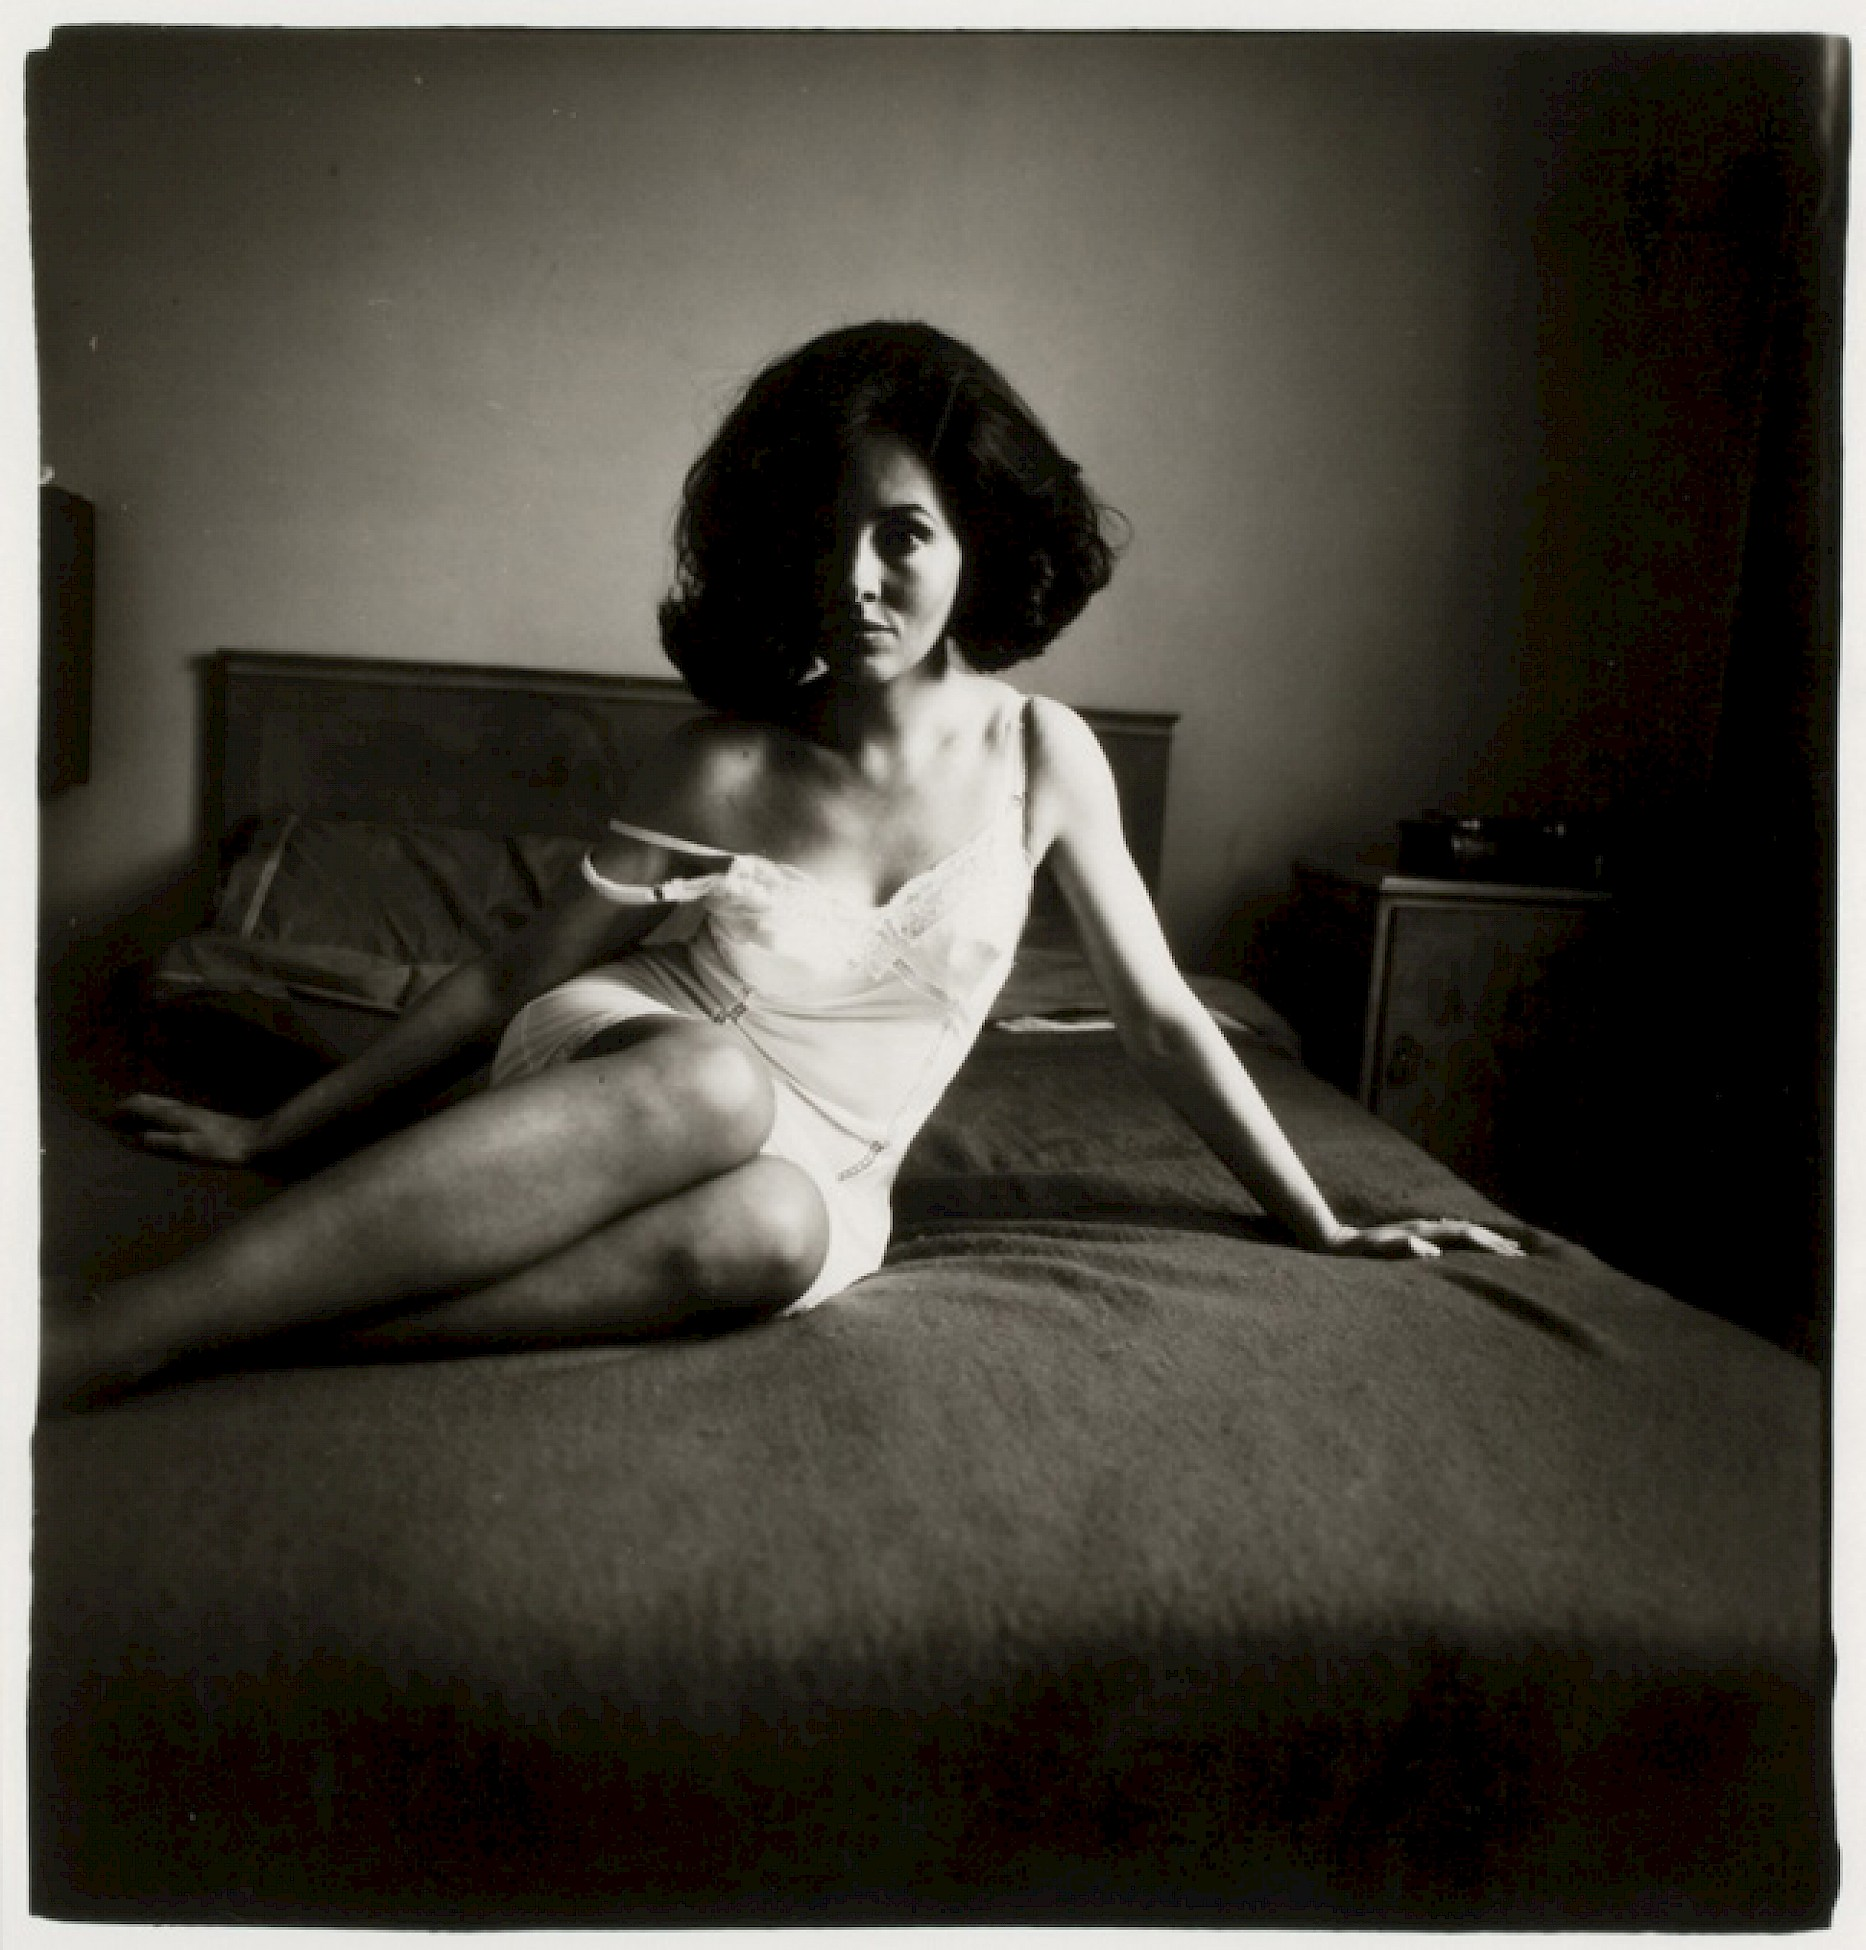 T008543 Diane Arbus Elizabeth Taylor look-alike reclining on a bed, London, England, 1969